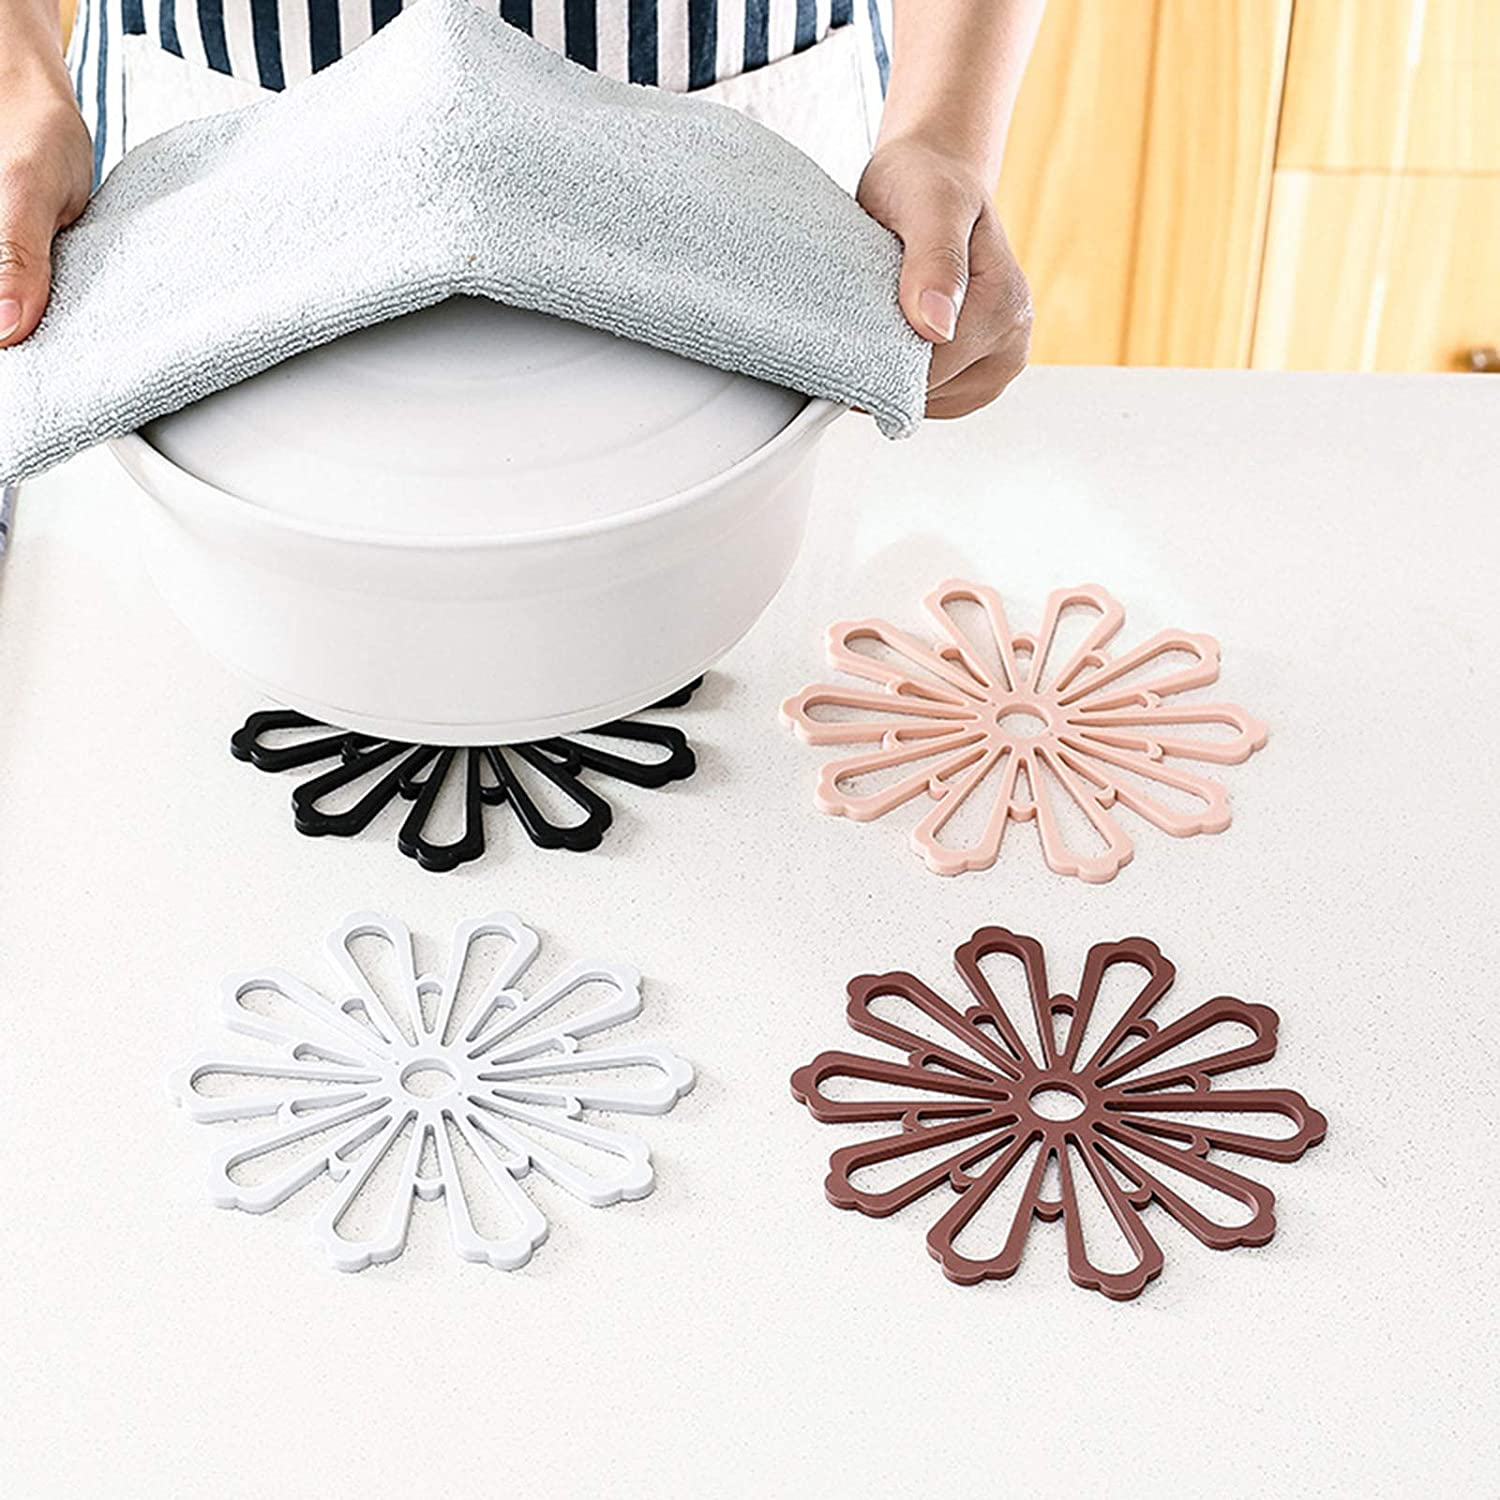 Bombing new work 3 Pcs Silicone Coasters Heat Slip Department store Resistant Non Pe and